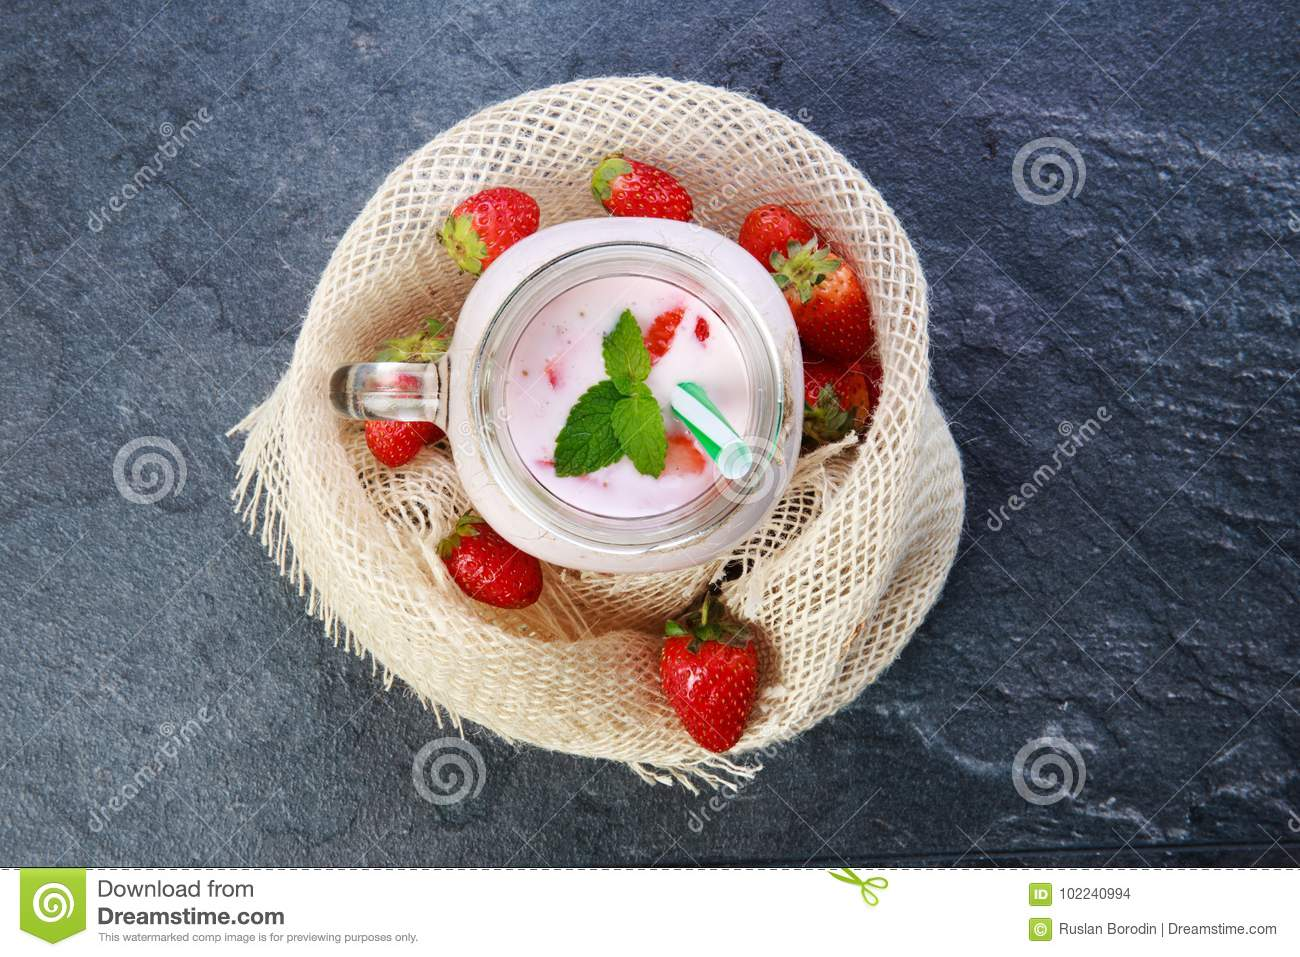 A top view on a mason jar with jogurt on a marble background. Food concept.